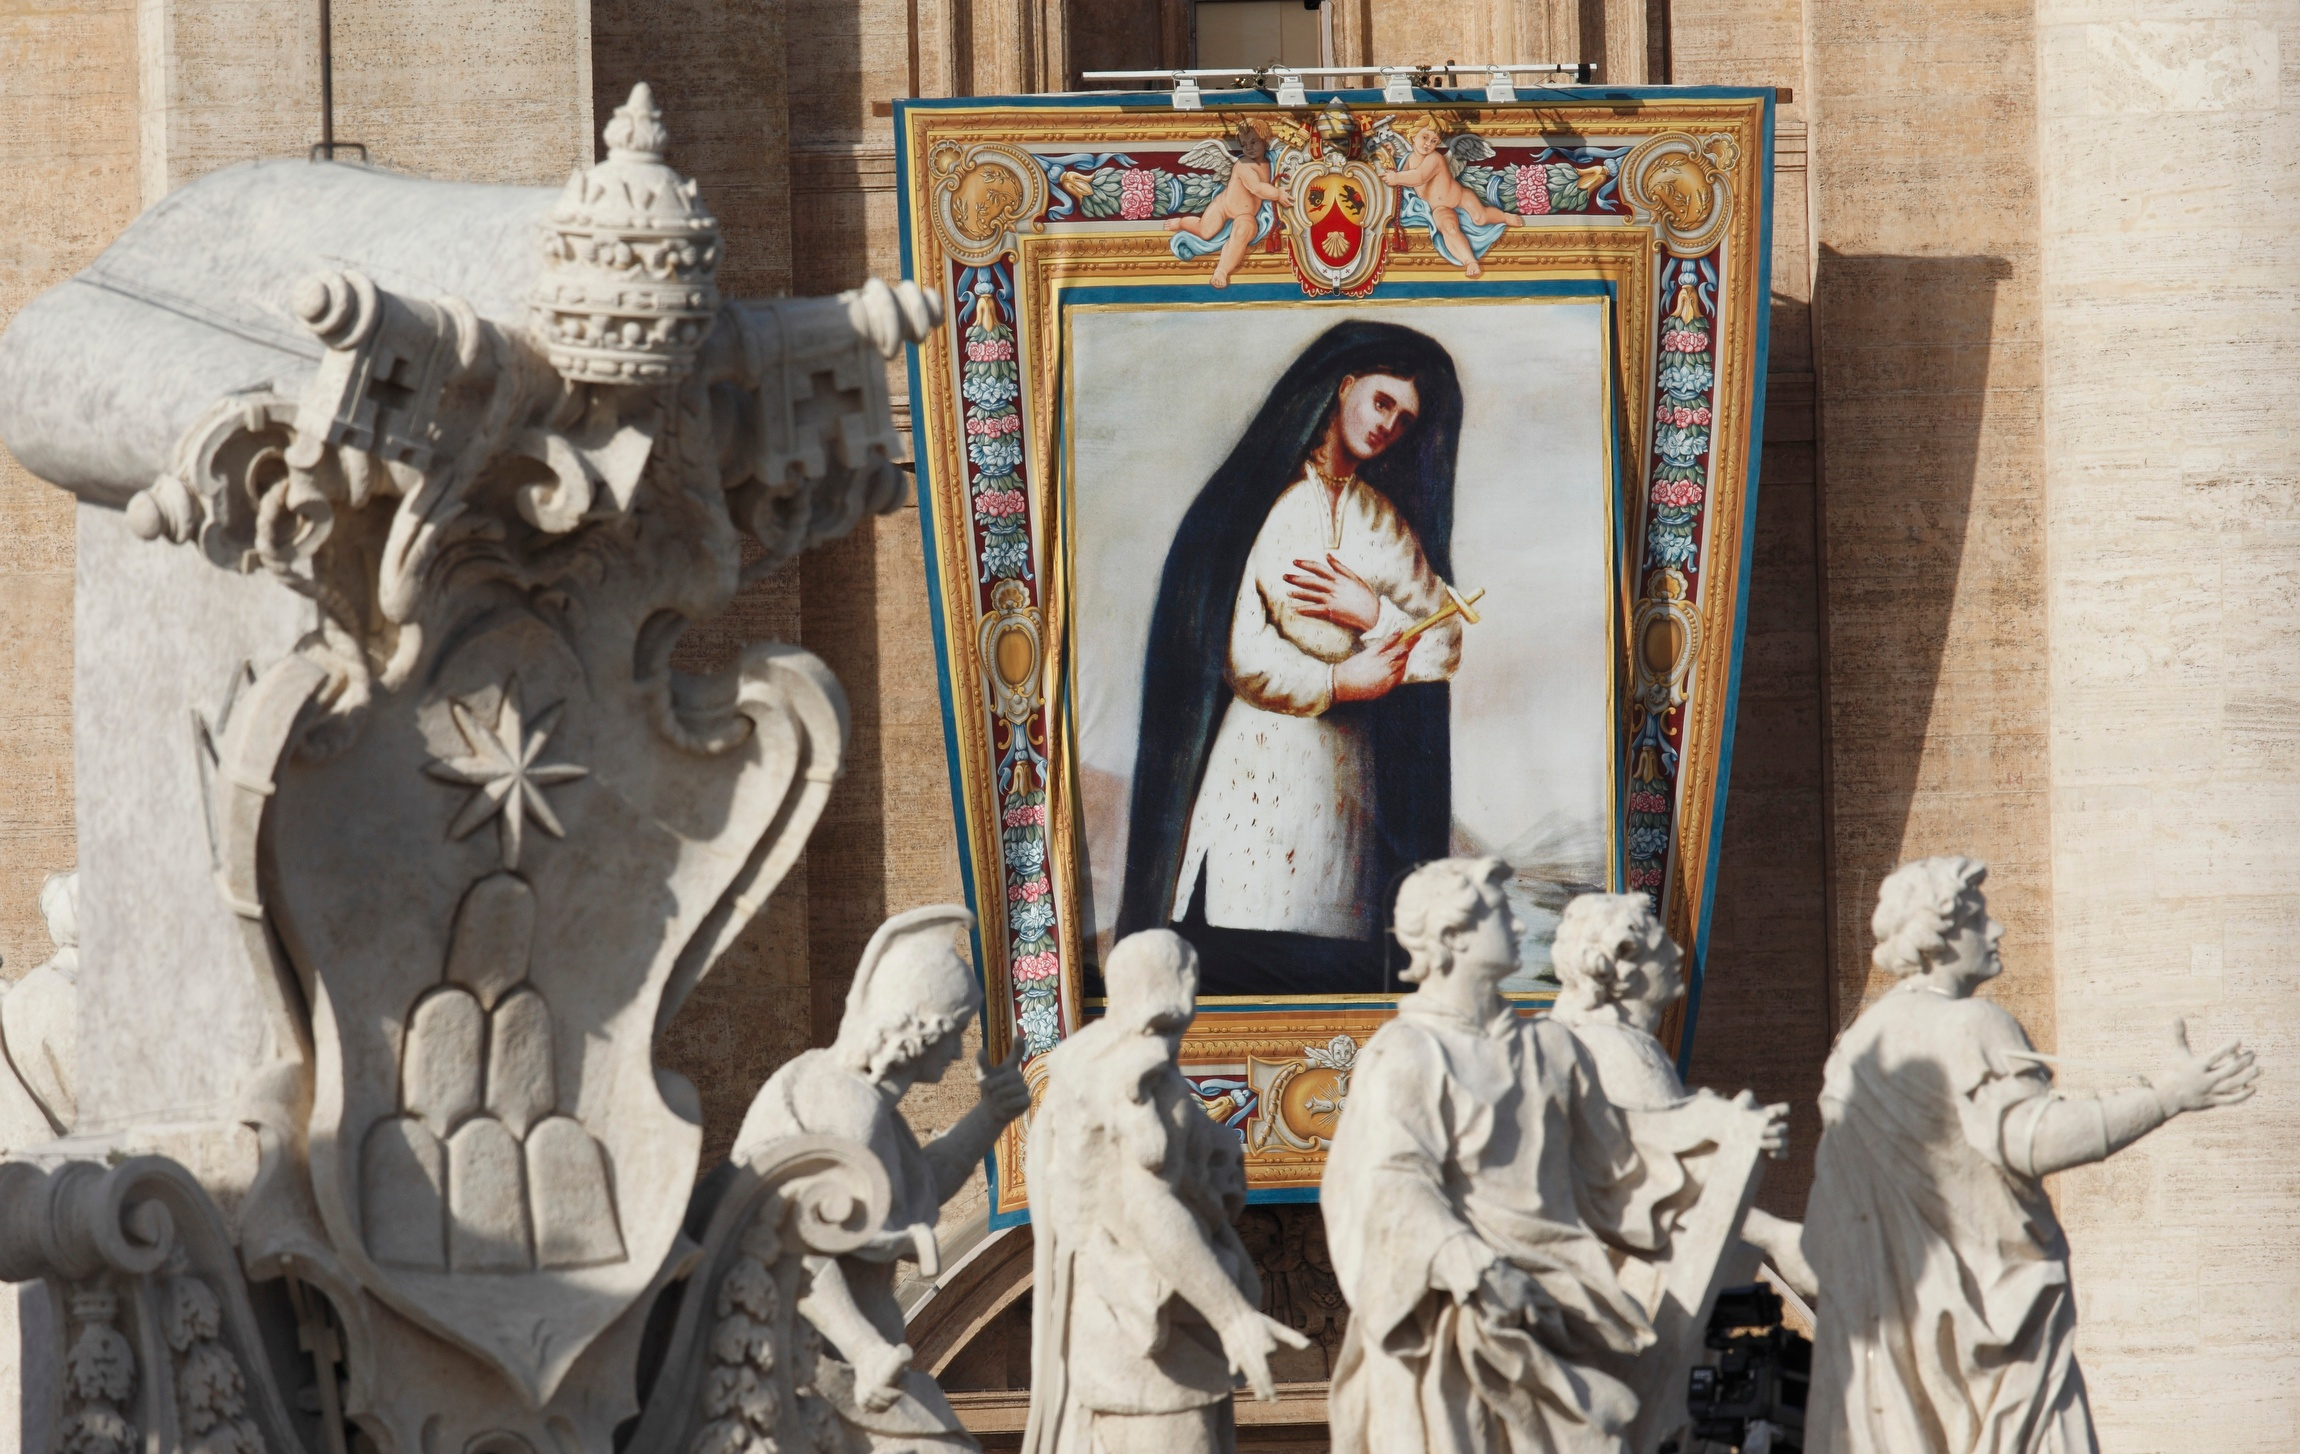 A banner of Saint. Kateri Tekakwitha hangs from the facade of St. Peter's Basilica during the canonization Mass. (CNS photo/Paul Haring)